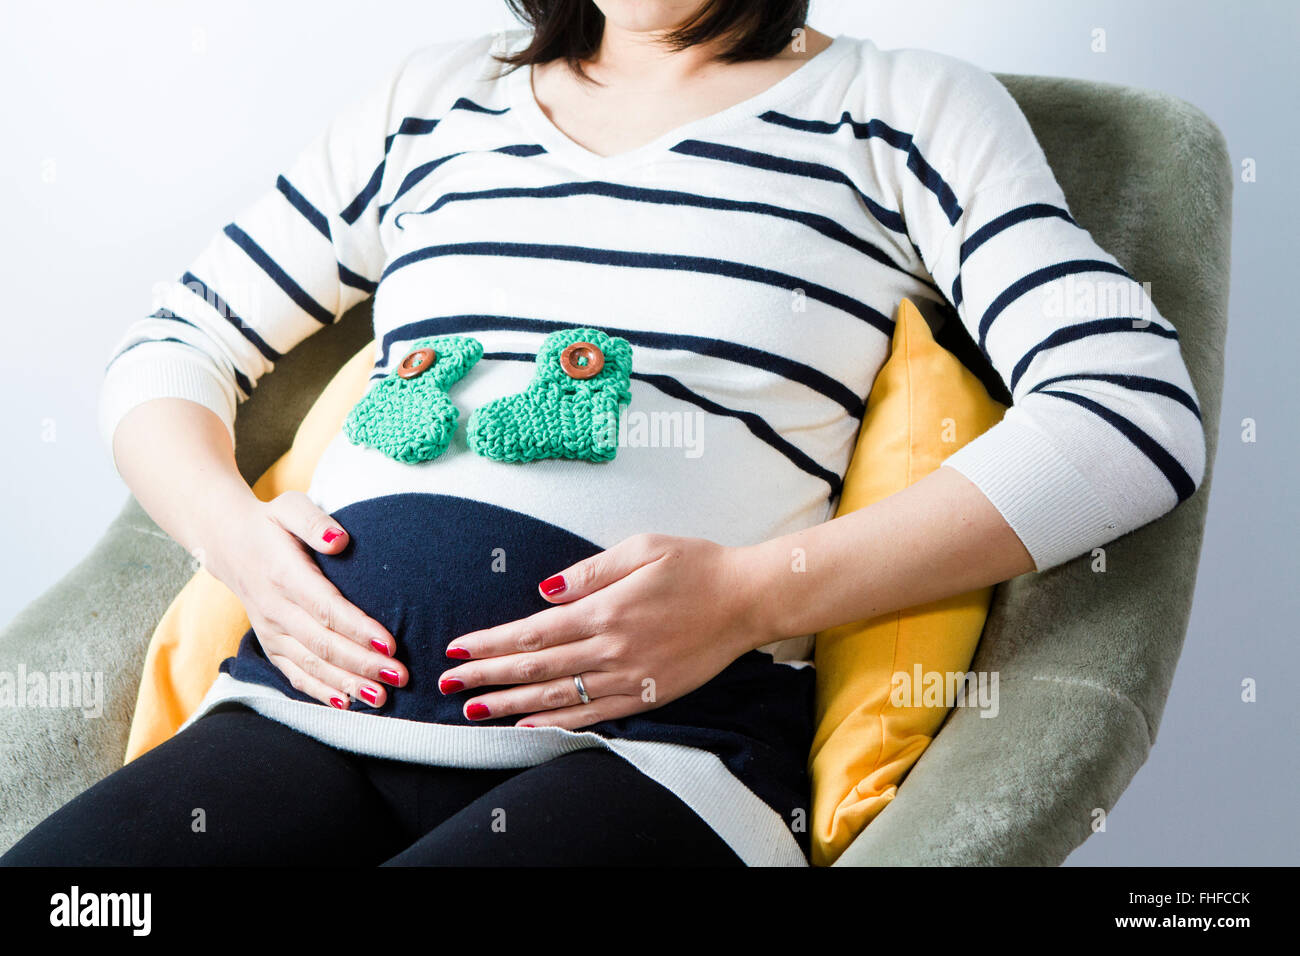 Pregnant woman sitting with baby's socks on belly - Stock Image